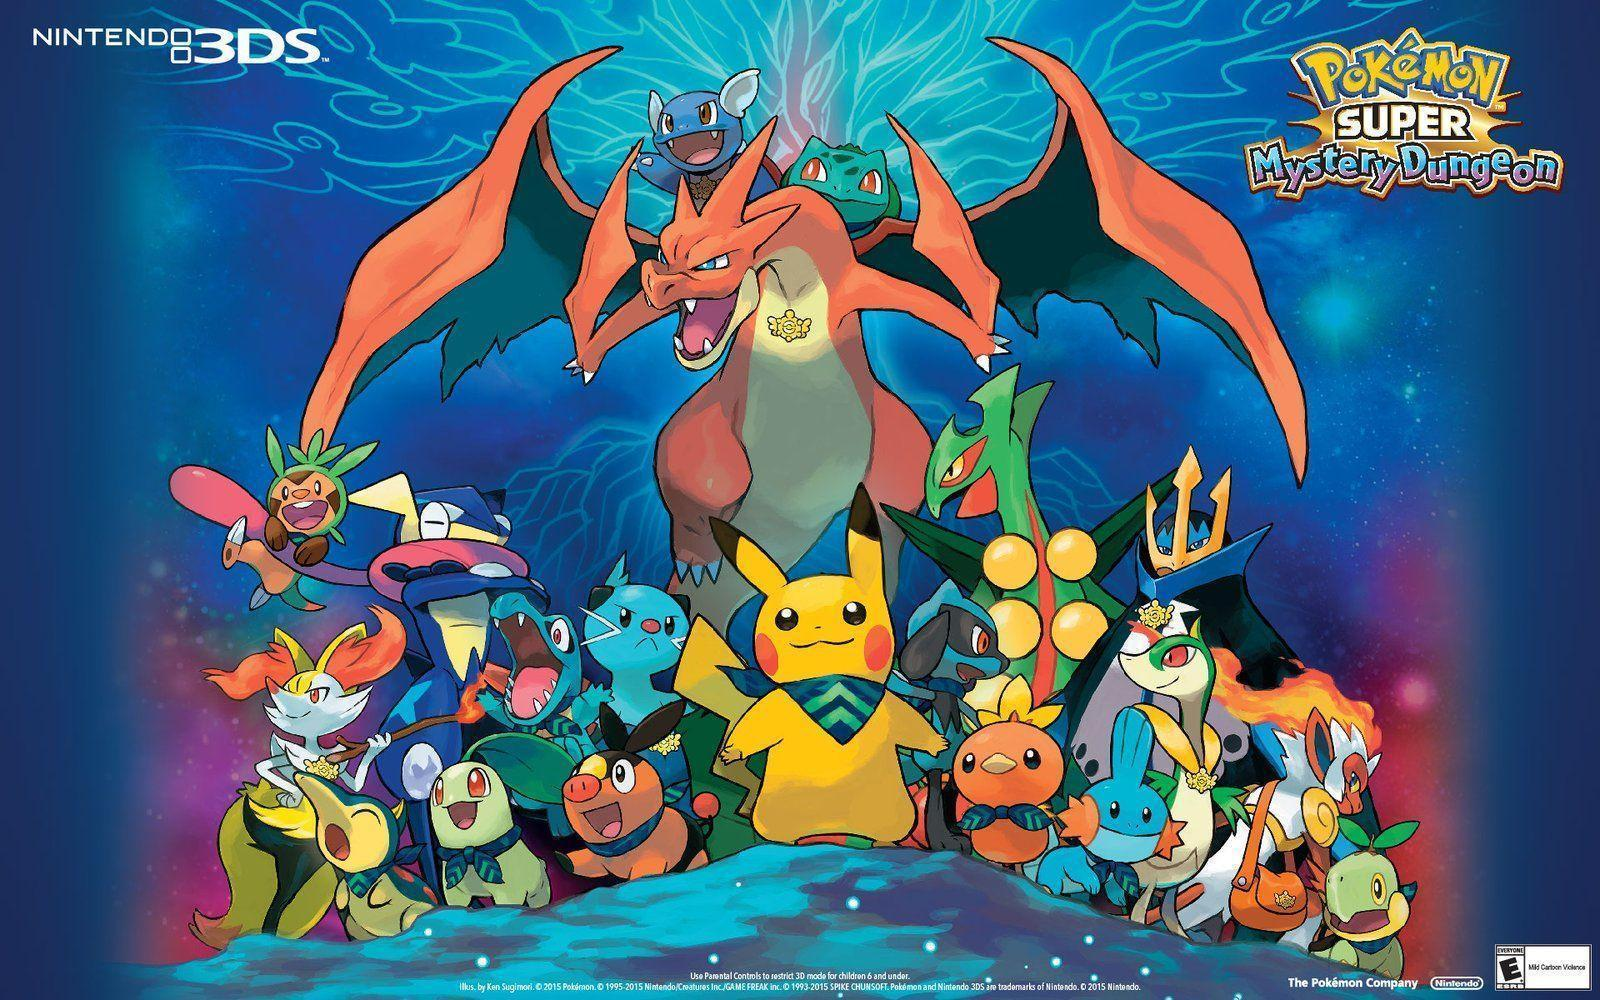 Pokemon Super Mystery Dungeon Desktop Wallpaper - Play Nintendo